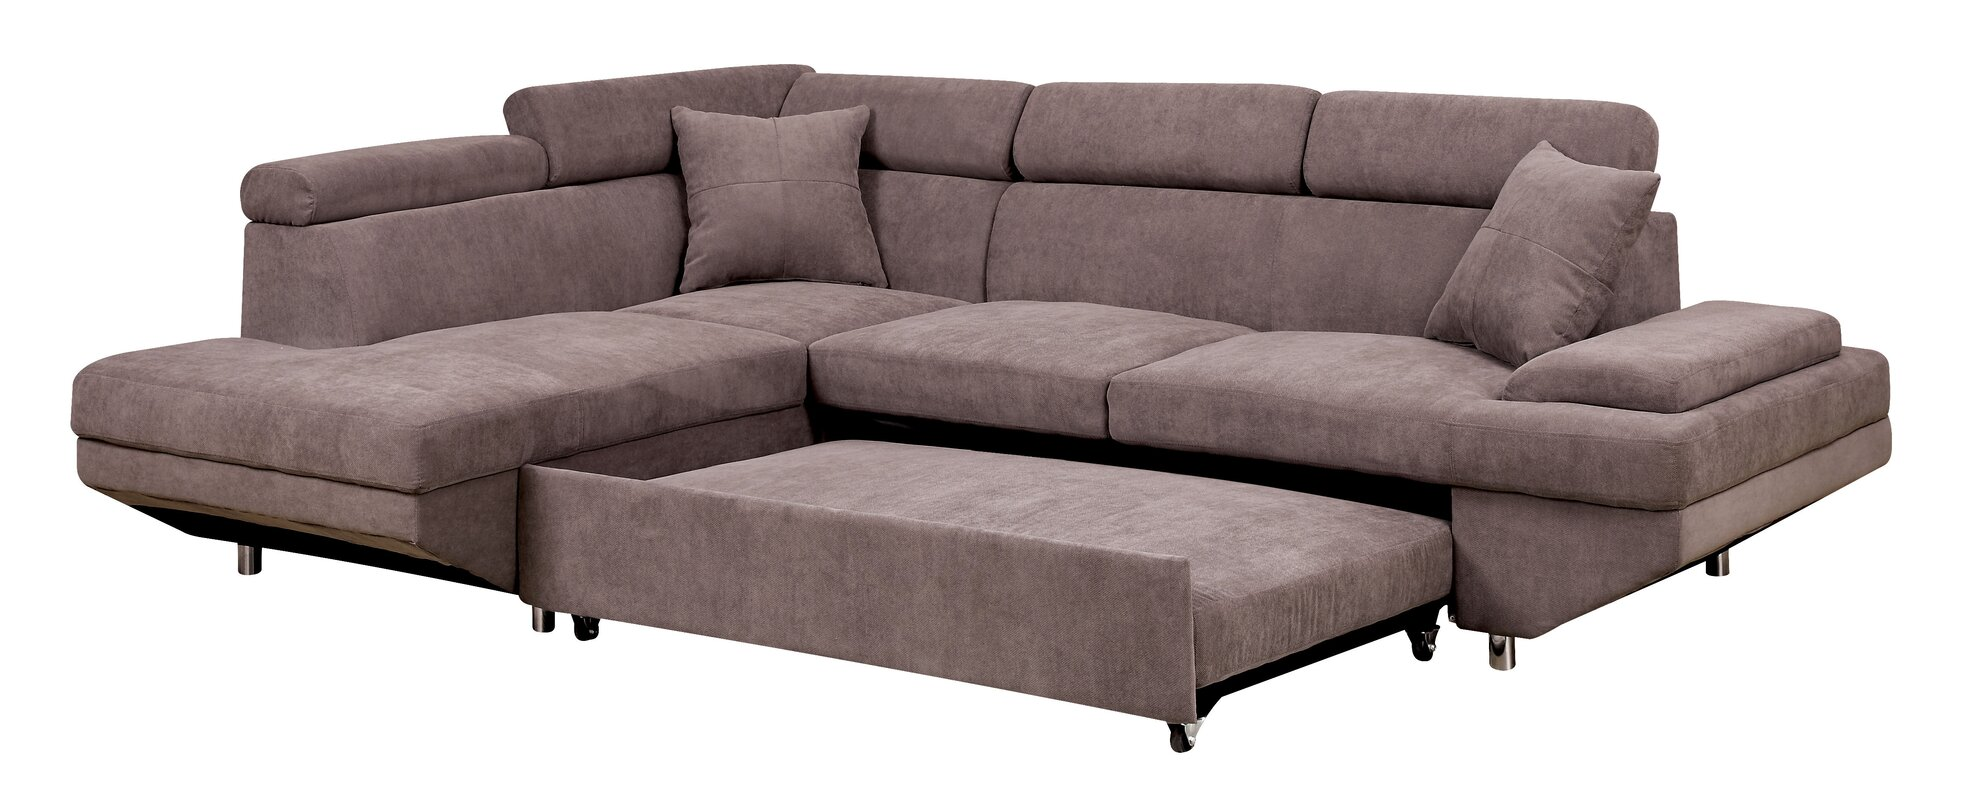 Orren Ellis Aprie Sleeper Sectional Collection Amp Reviews